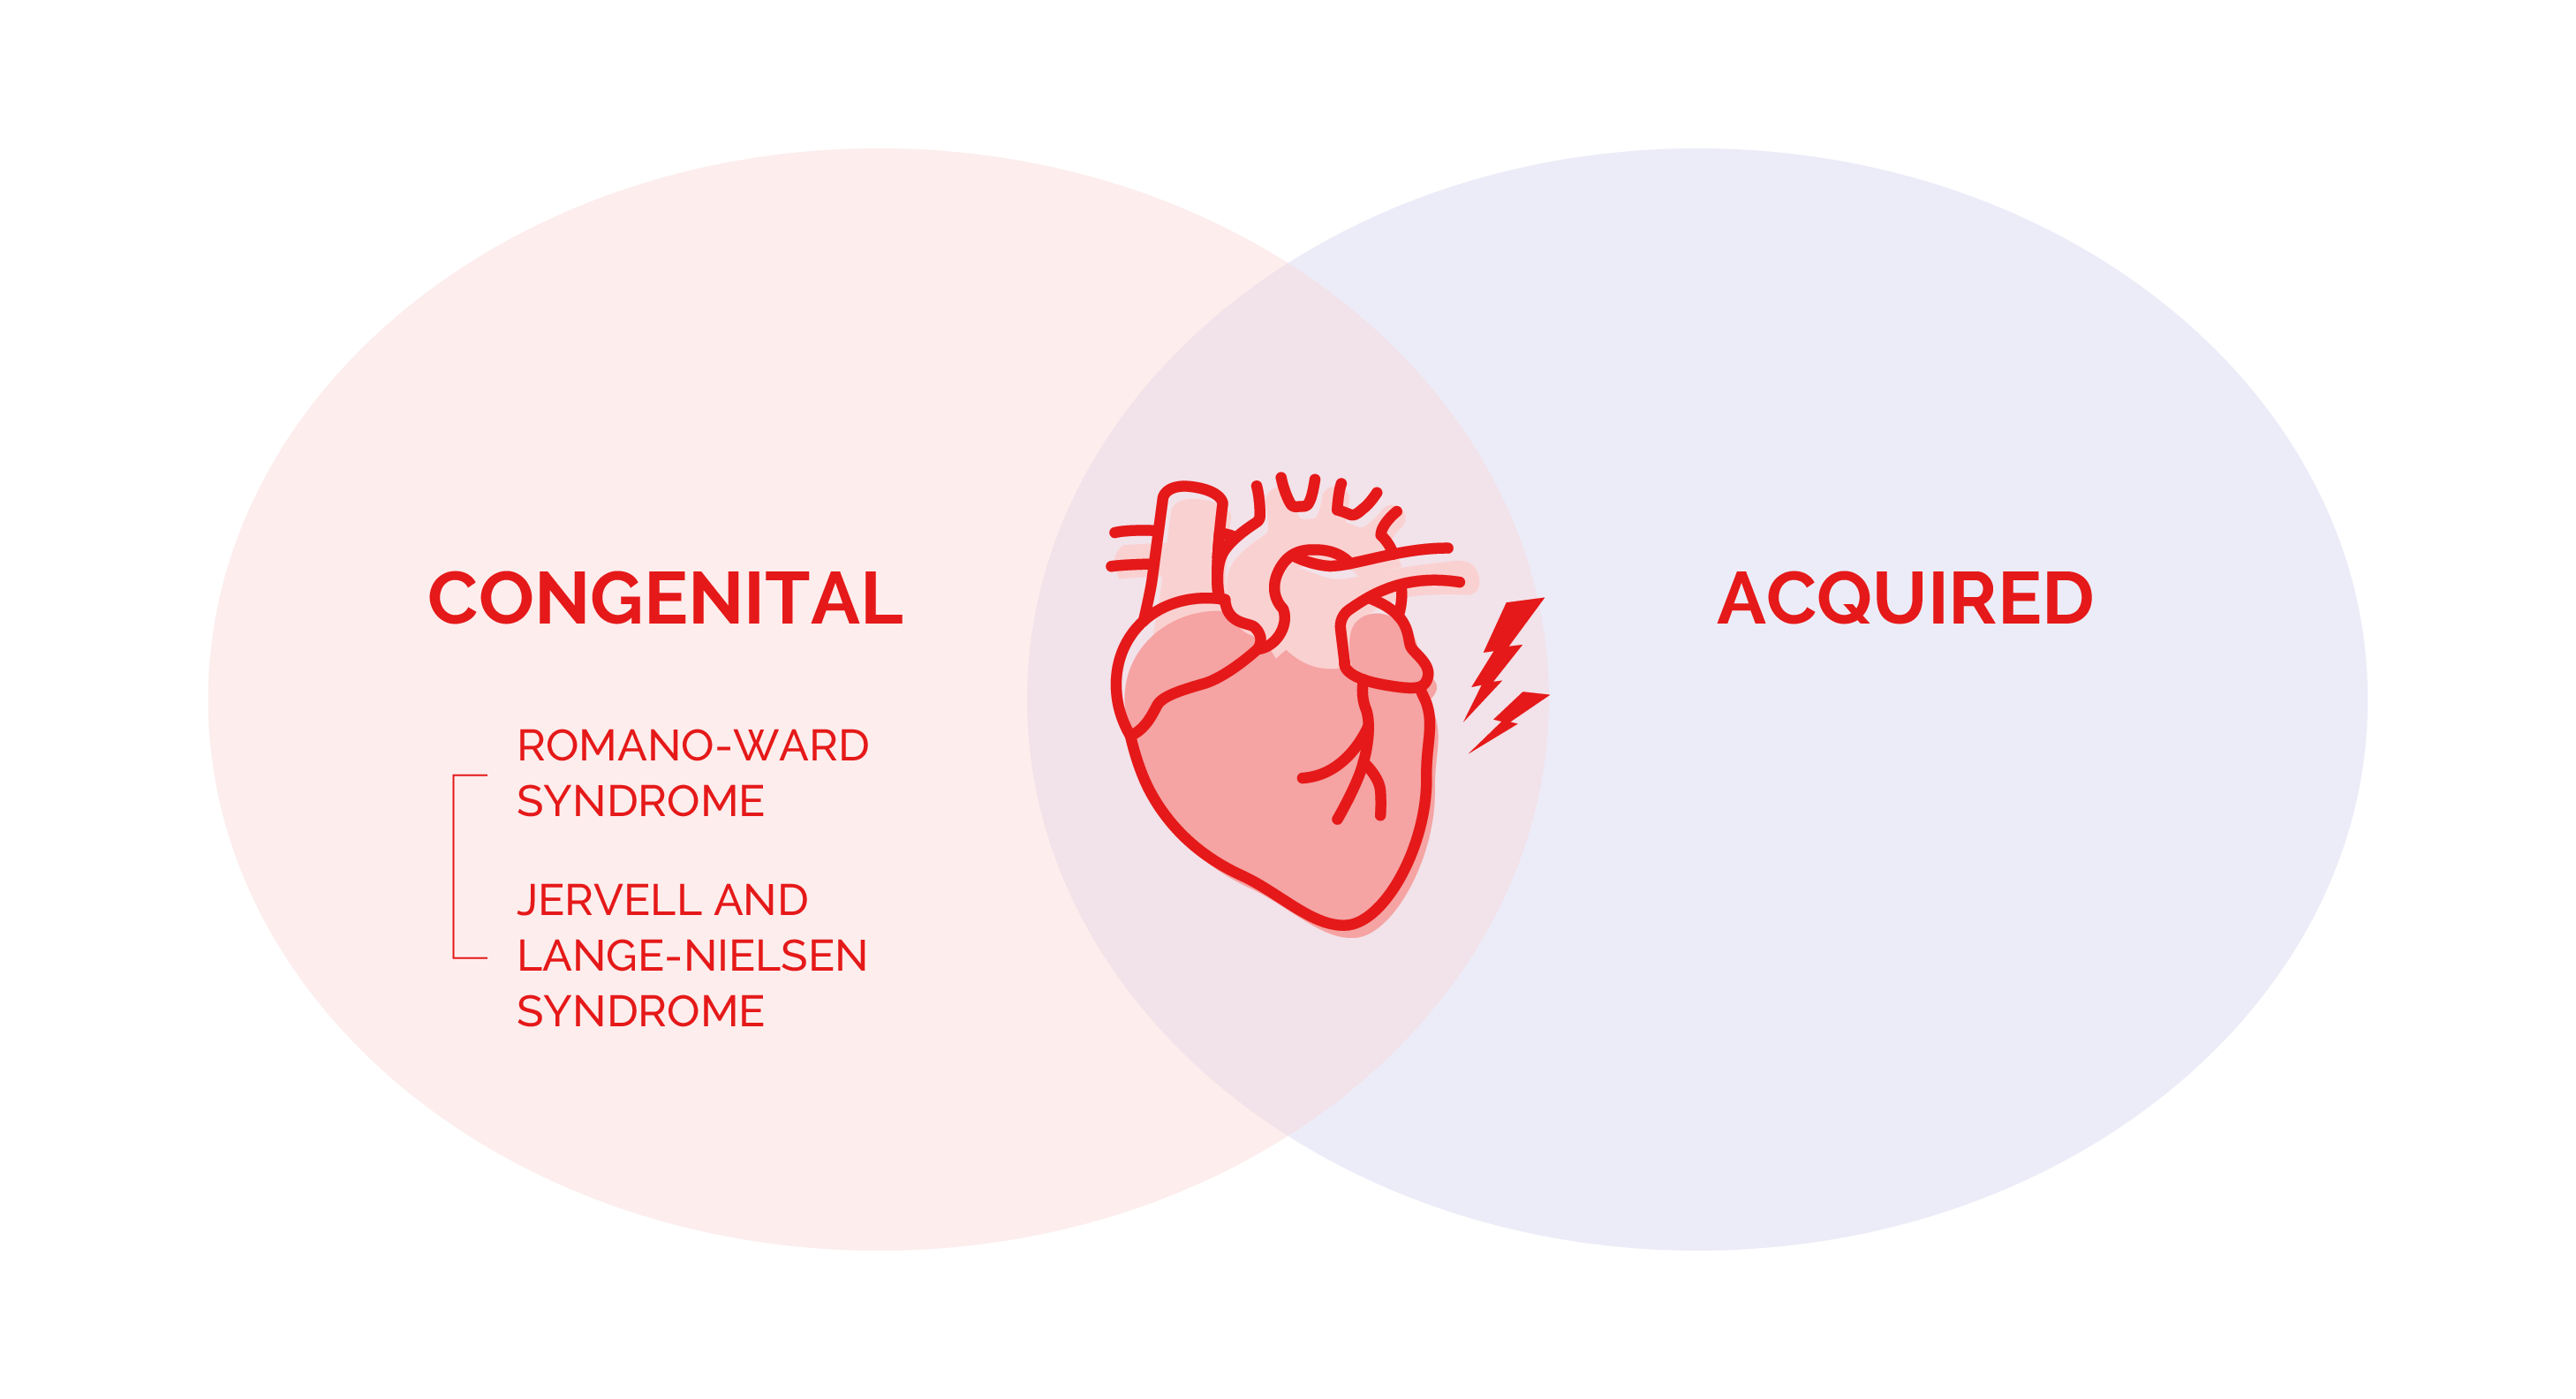 Diagram showing two different types of Long QT syndrome: Congenital and Acquired